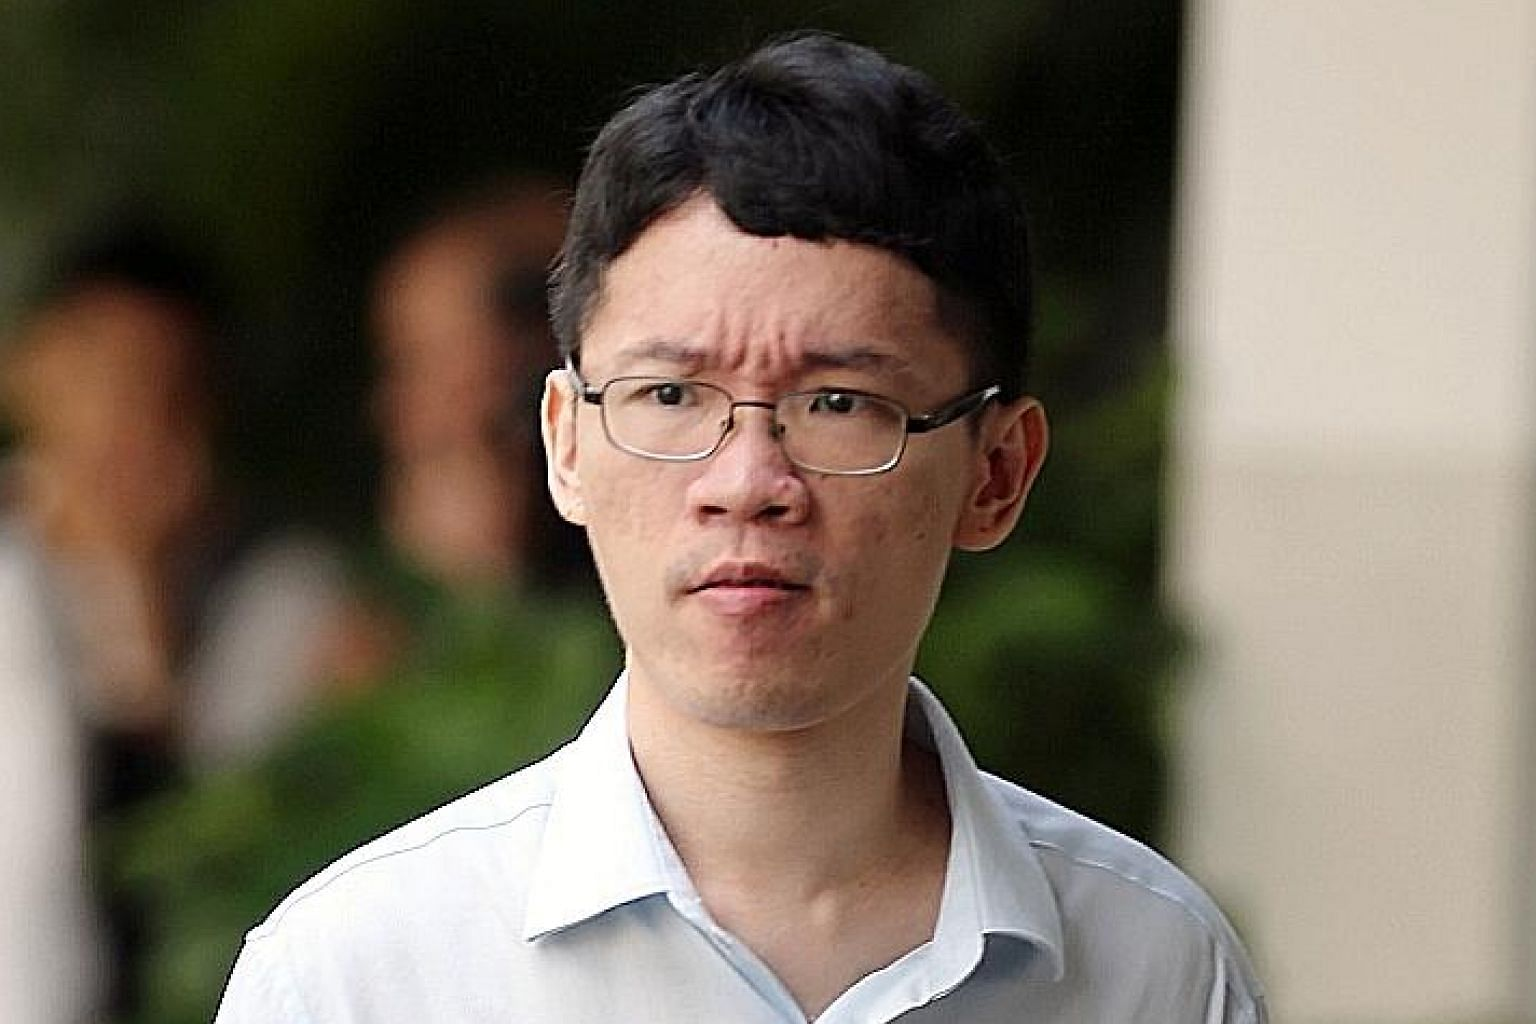 Lim Wei Ming's Instagram post on Aug 14 last year resulted in at least 38 police reports being lodged against him.